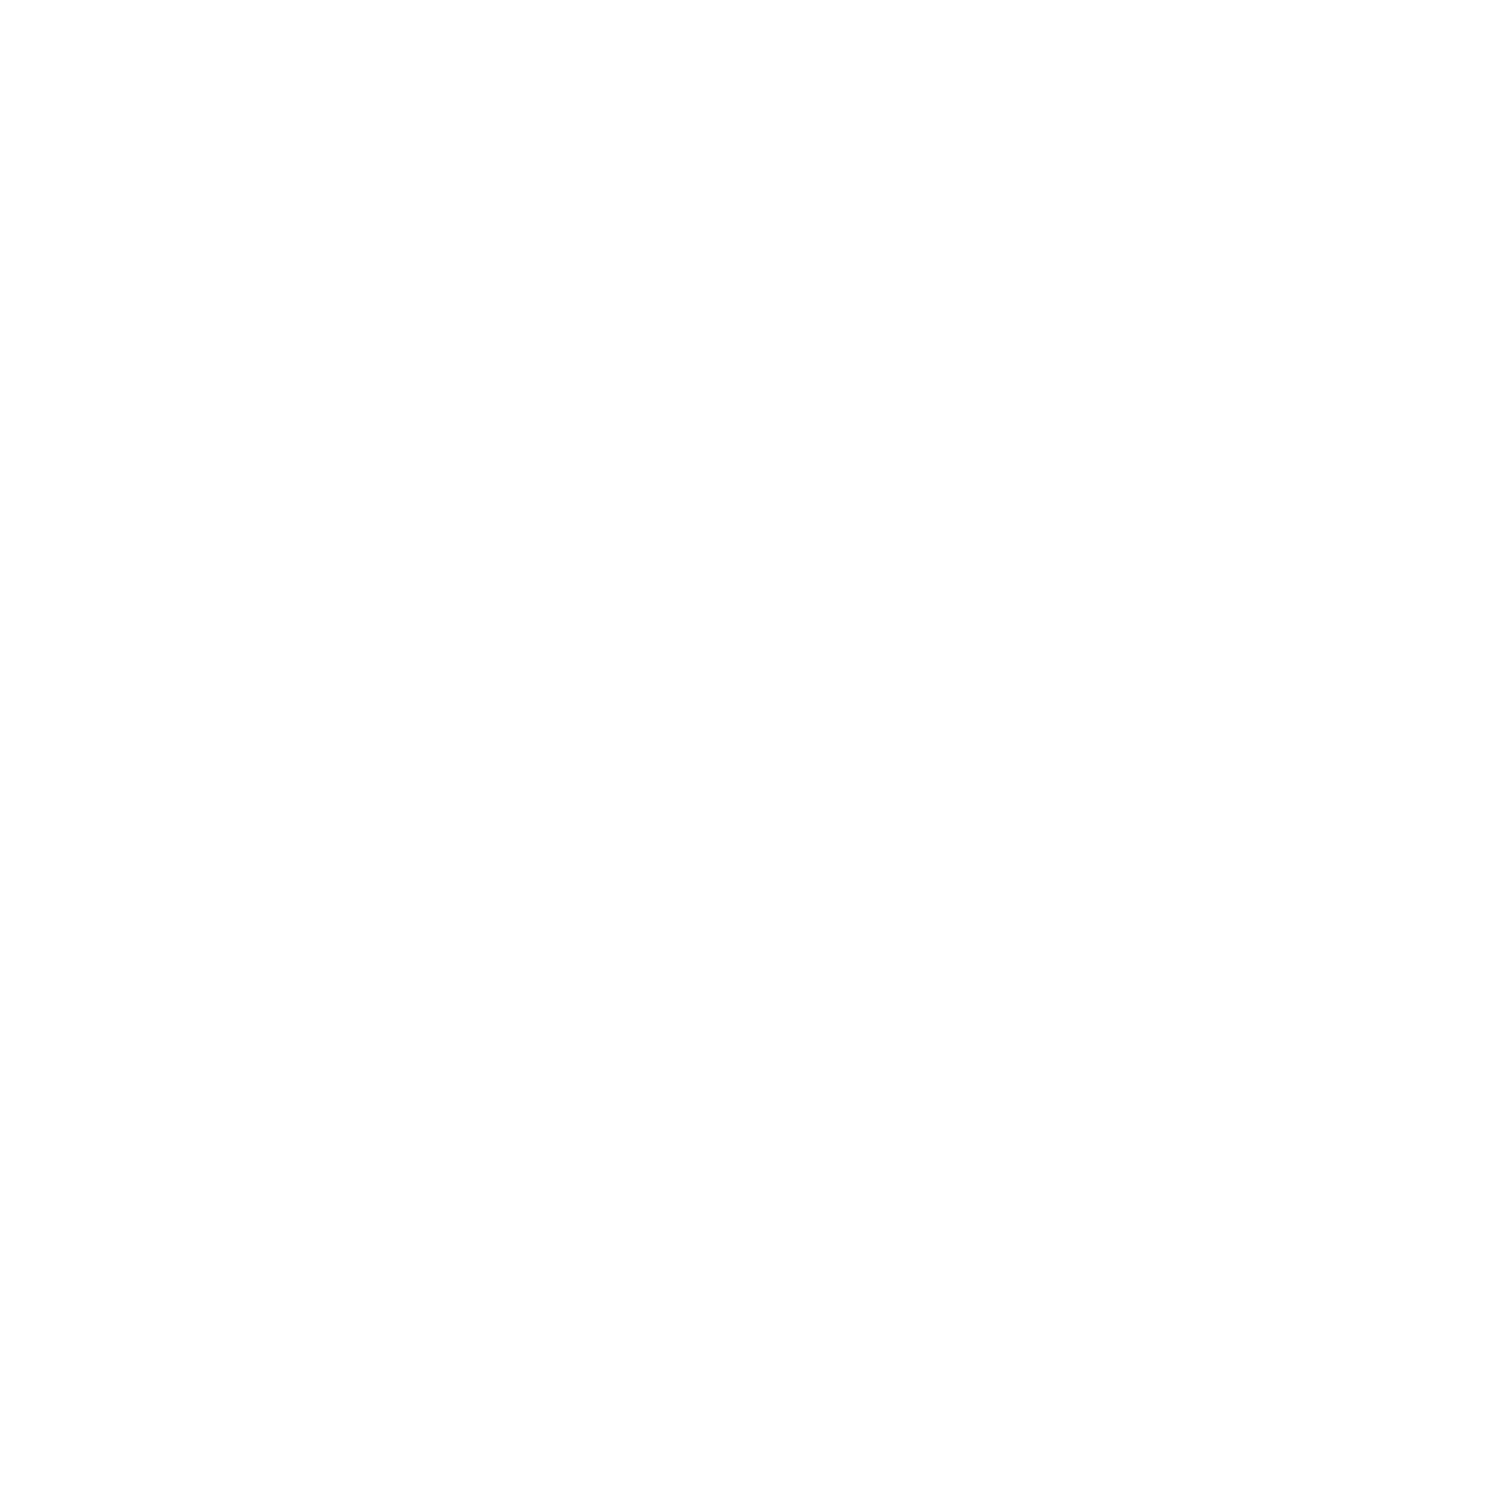 2019 OFFICIAL LATINO LAURELSwhite.png